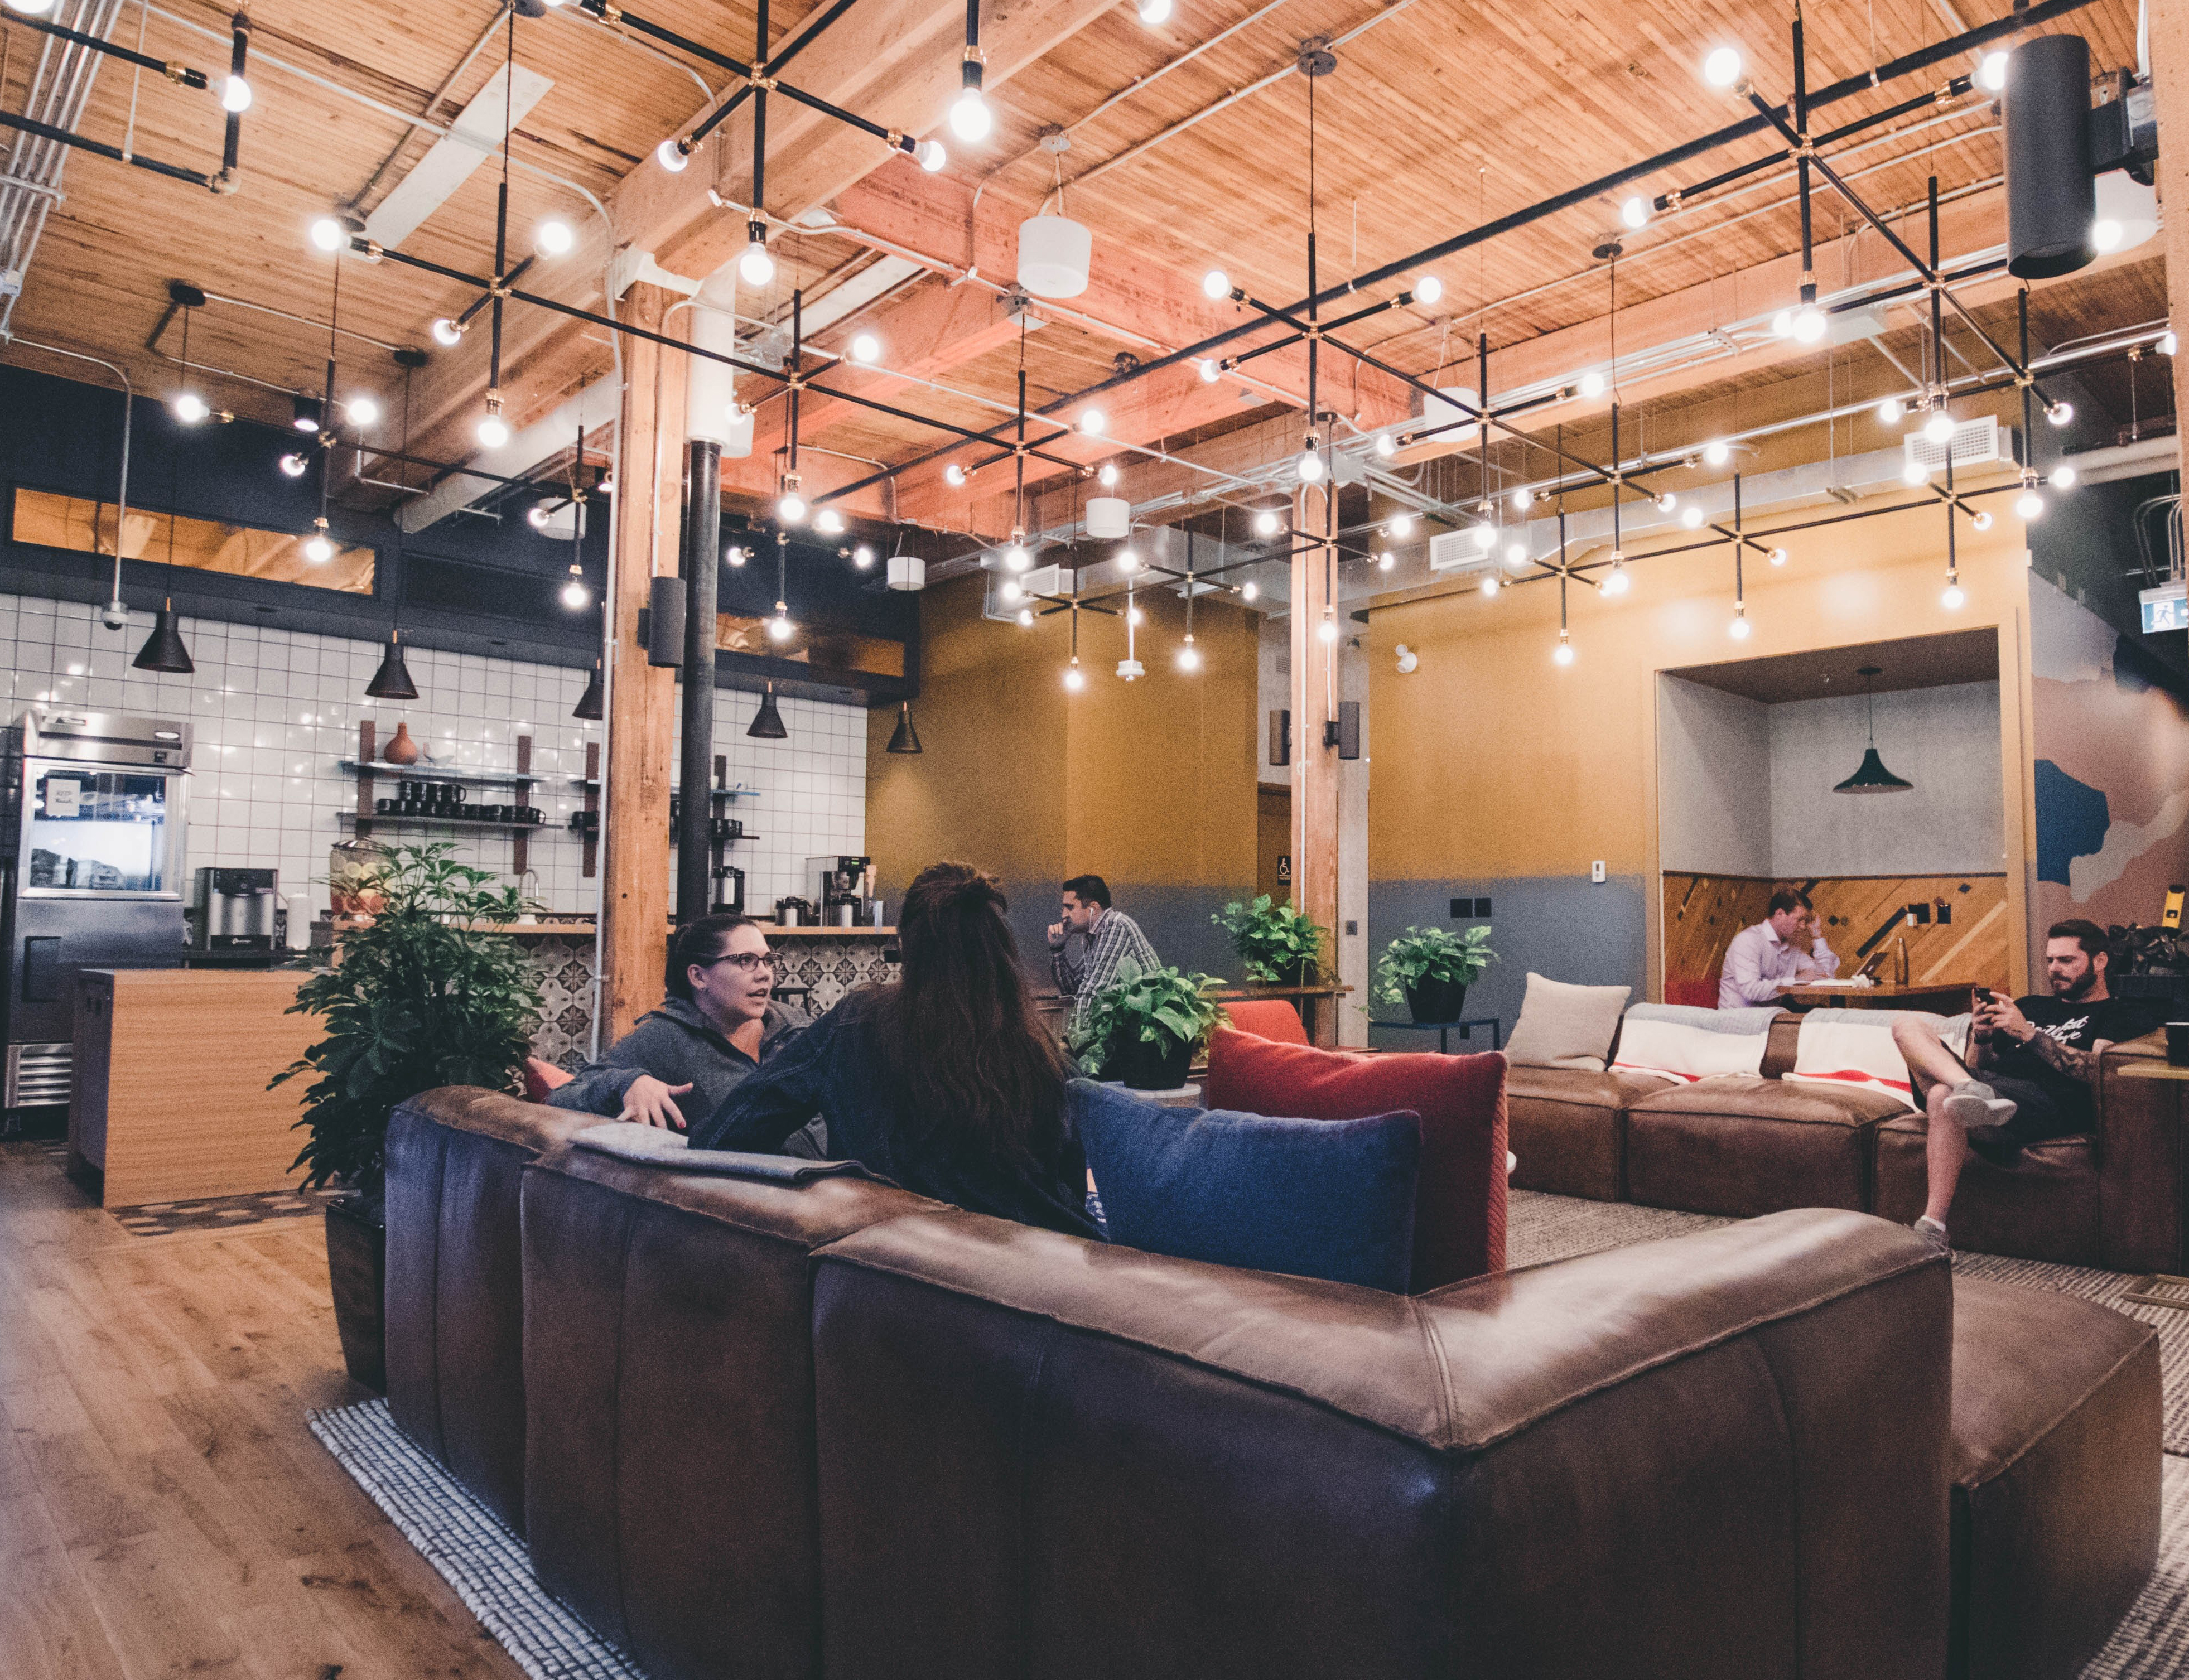 Co-Living in the Sharing Economy